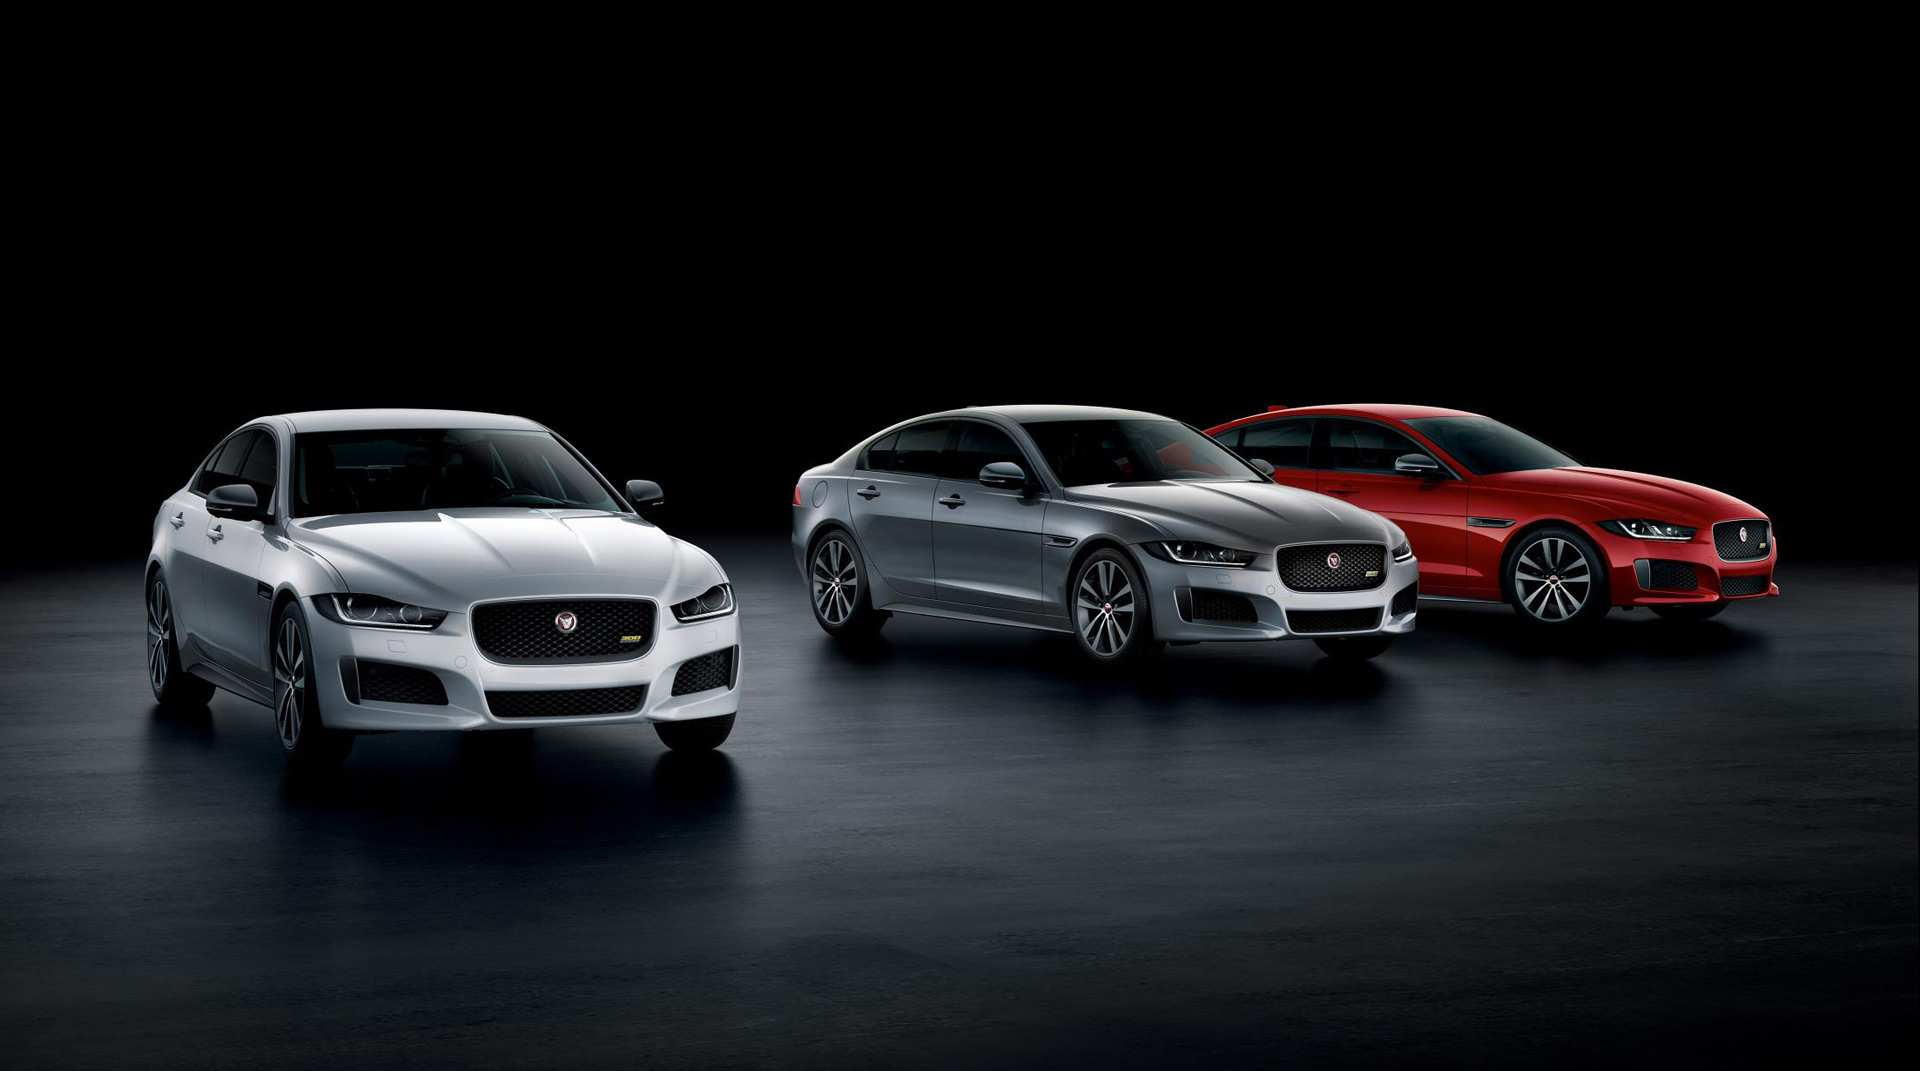 92 All New Jaguar Xe 2019 Release Date